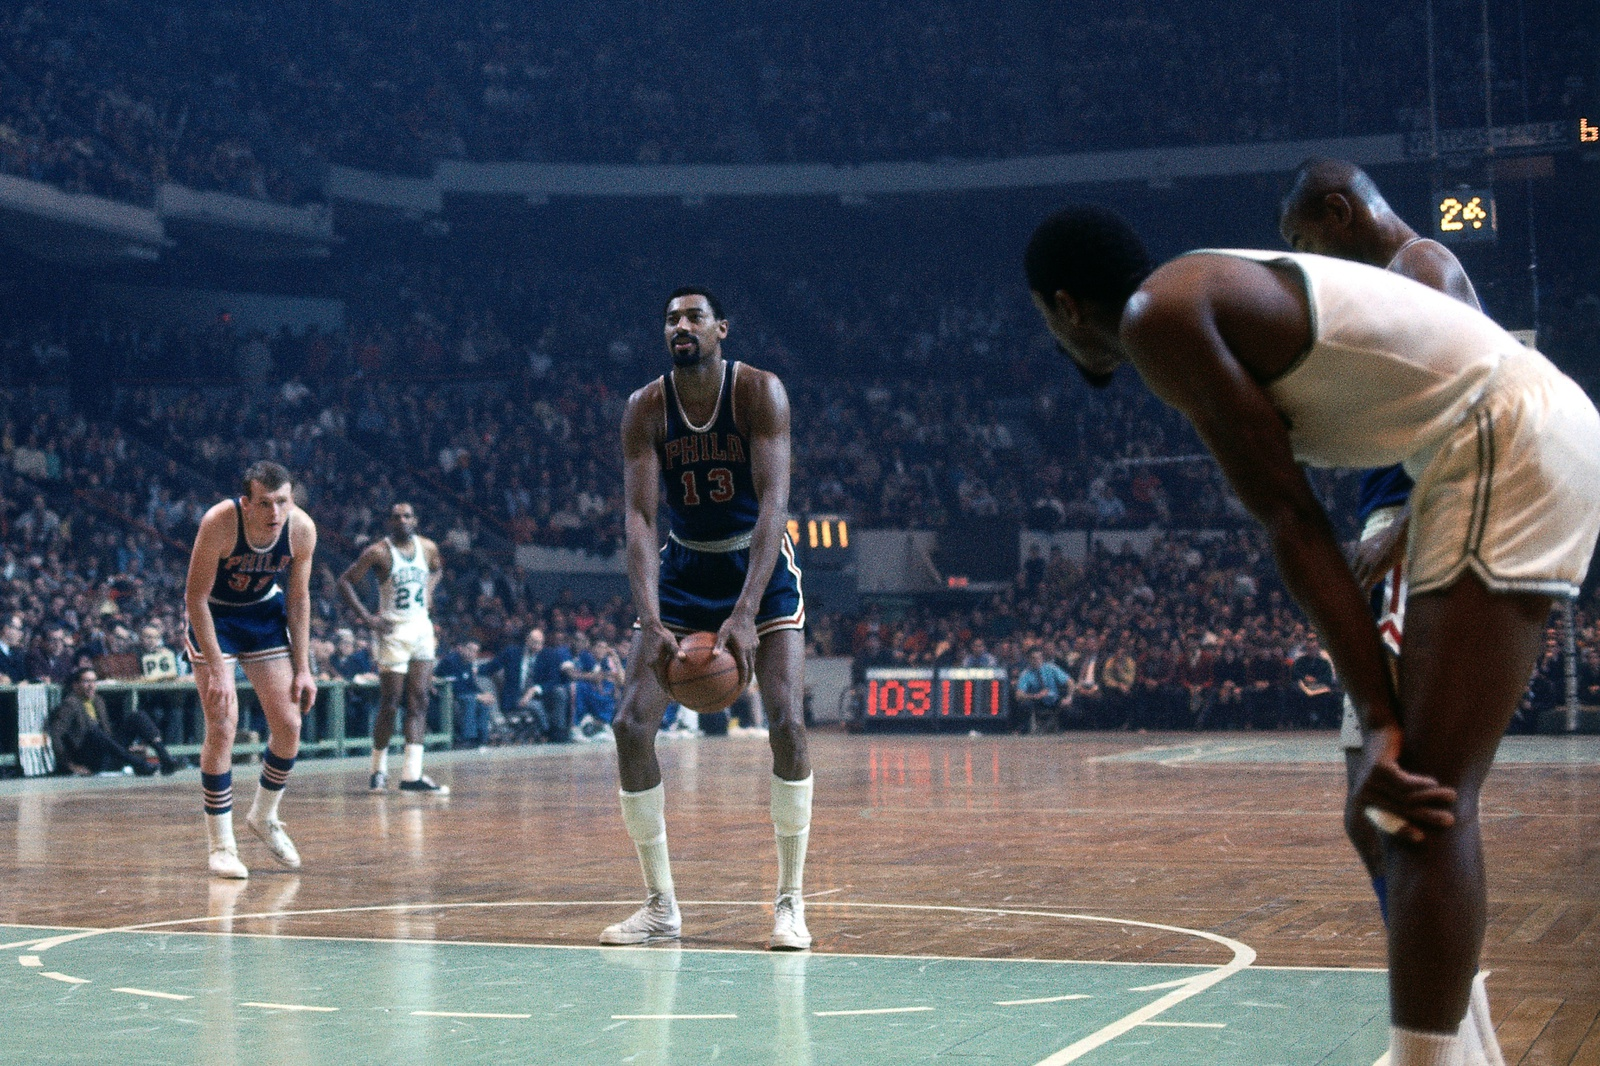 Wilt Chamberlain #13 of the Philadelphia 76ers shoots a free throw against the Boston Celtics during a game played in 1968 at the Boston Garden in Boston, Massachusetts.